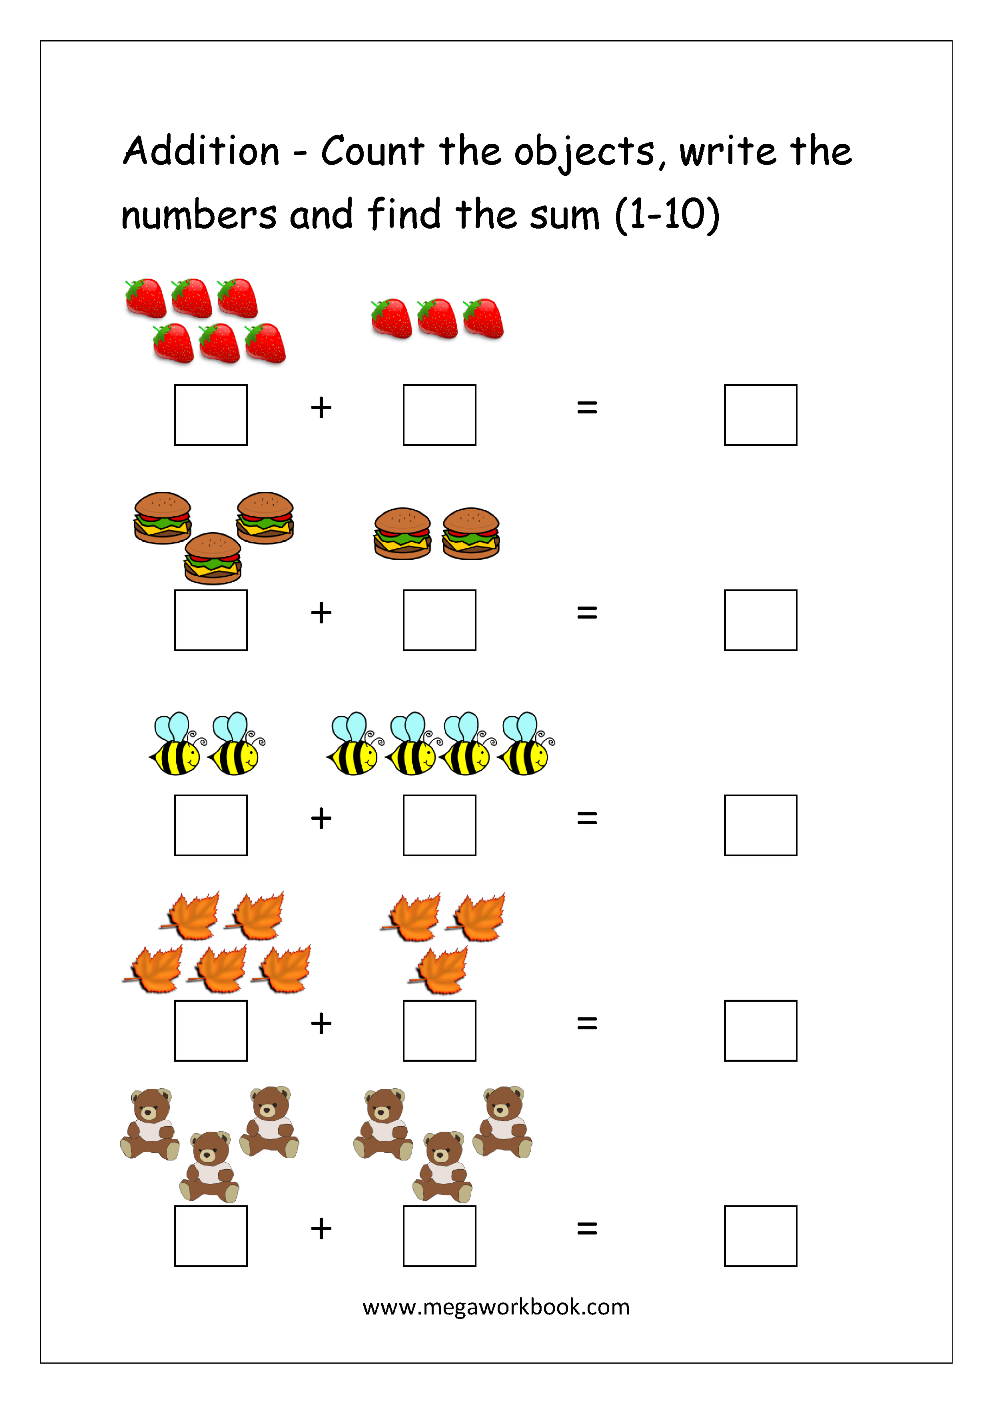 free printable number addition worksheets  for kindergarten  math printable worksheet  single digit addition with picturesobjects